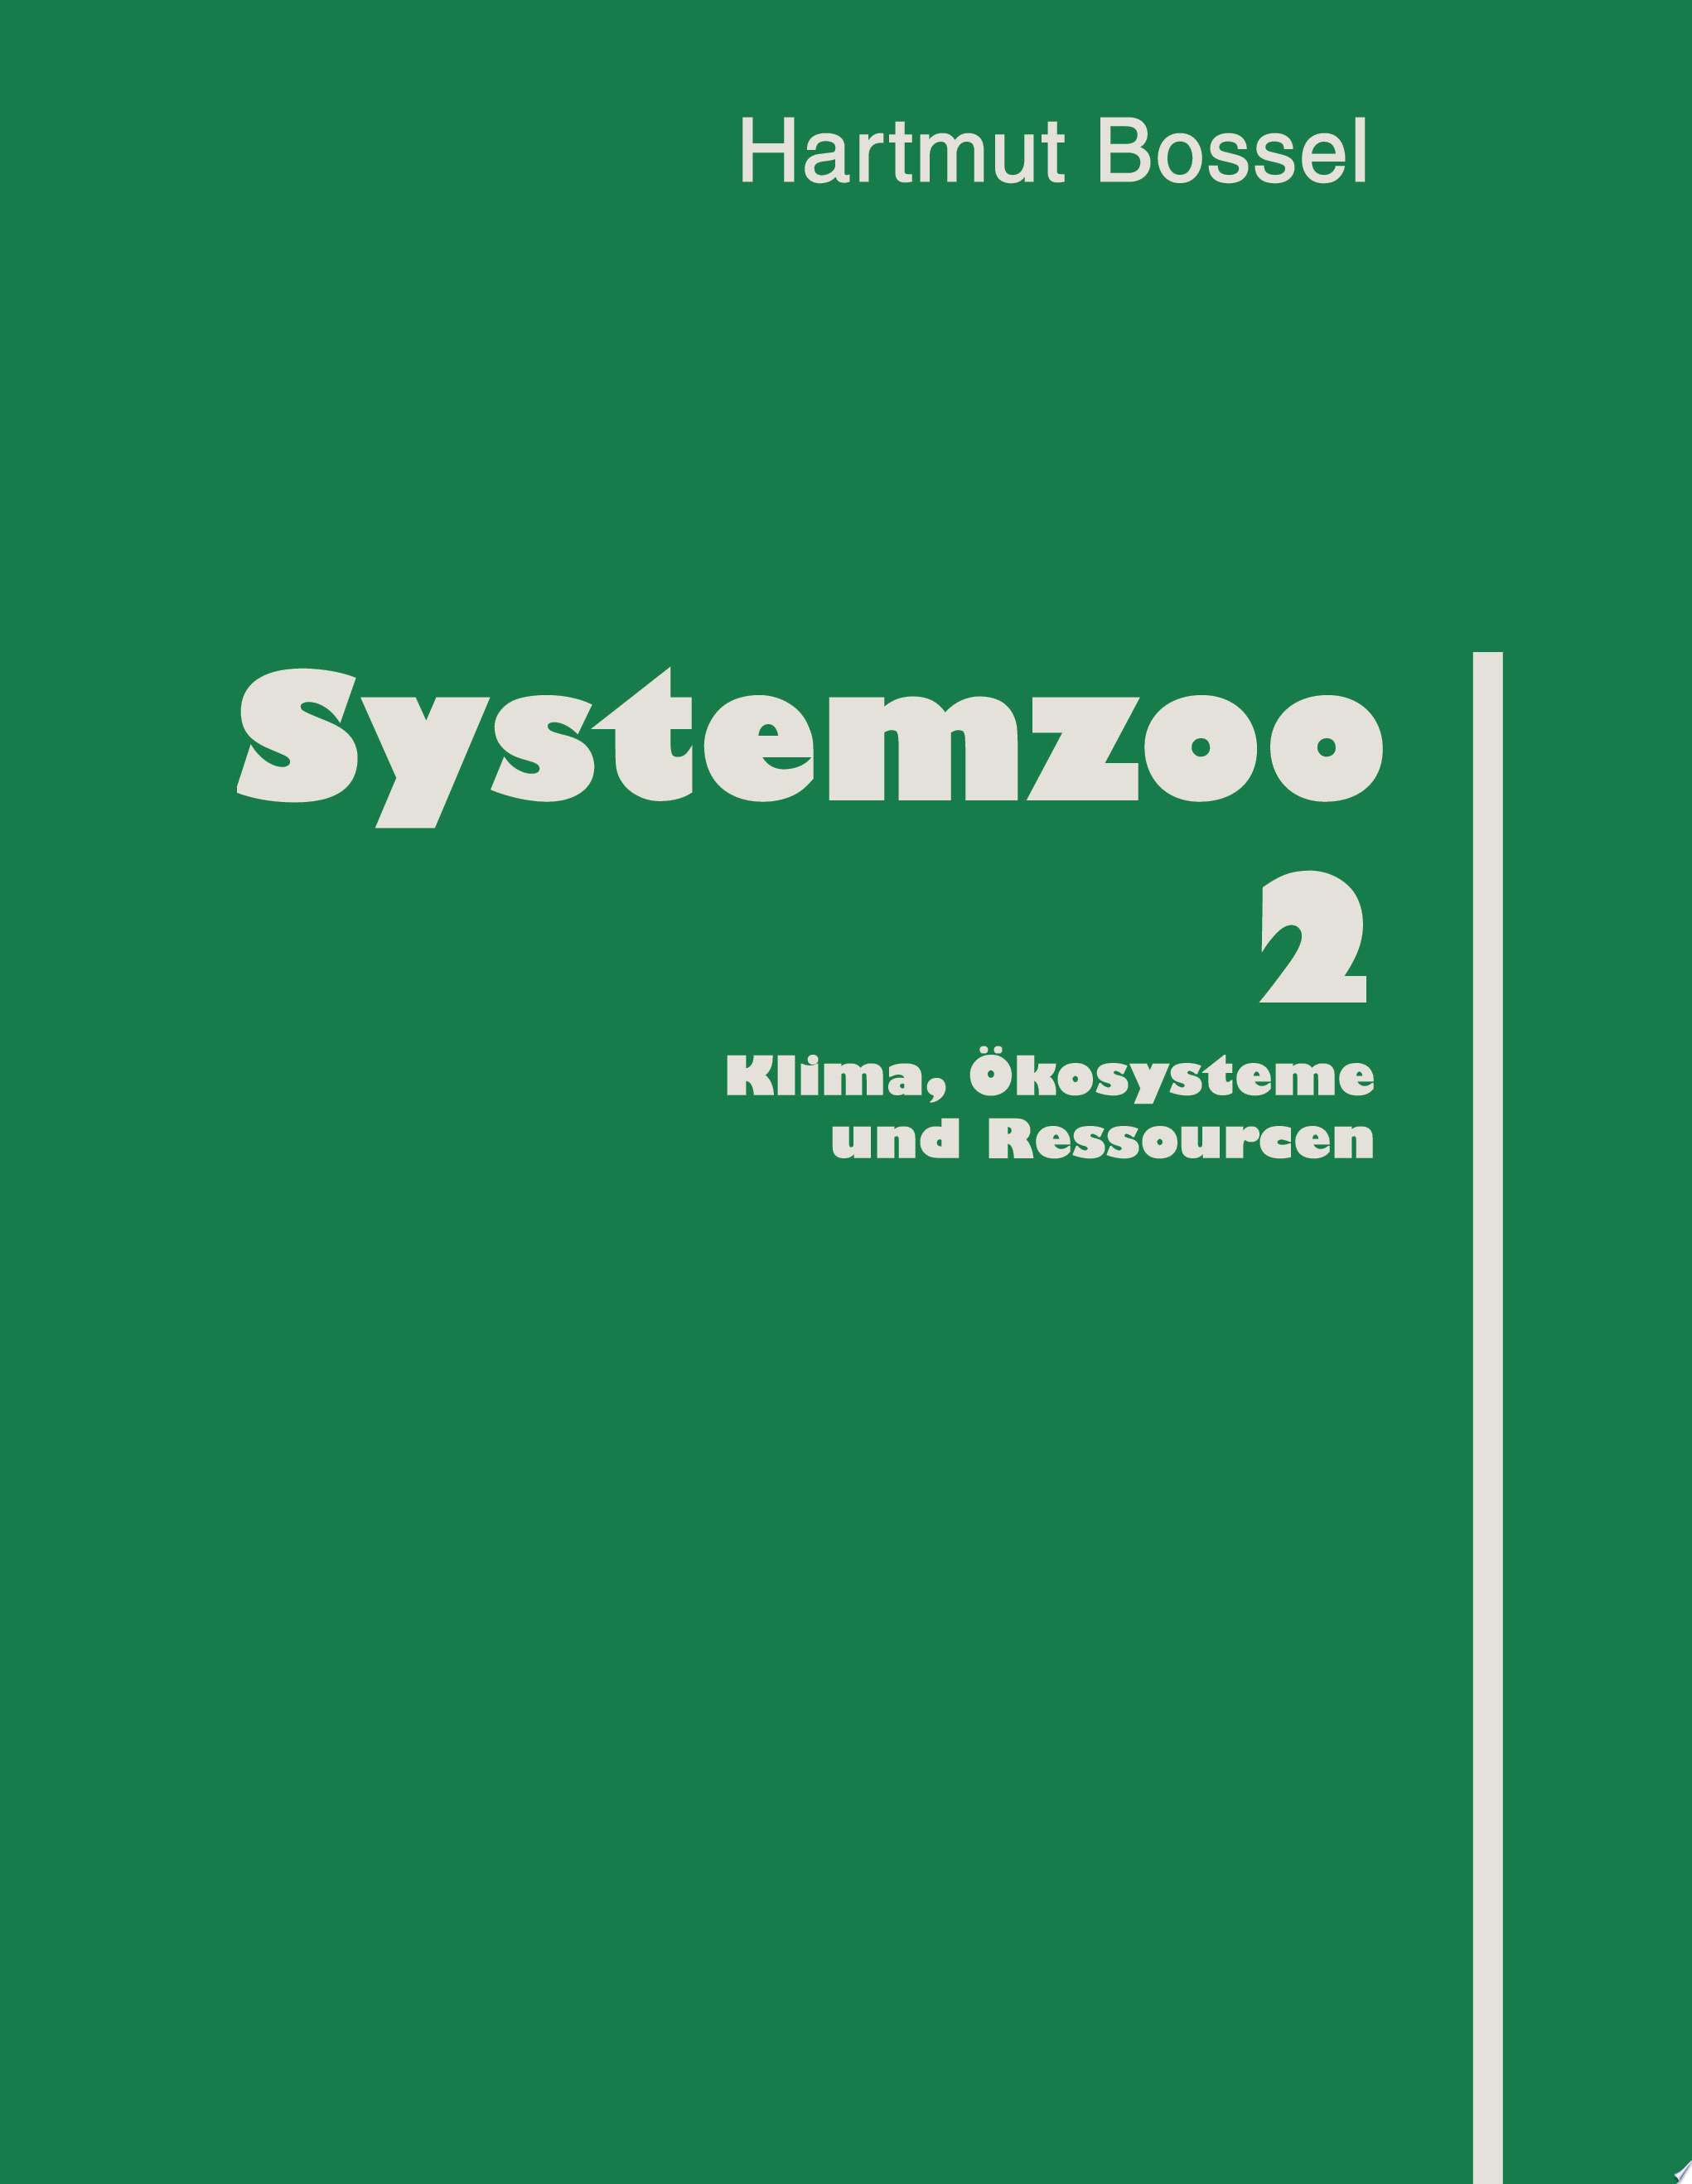 Systemzoo 2